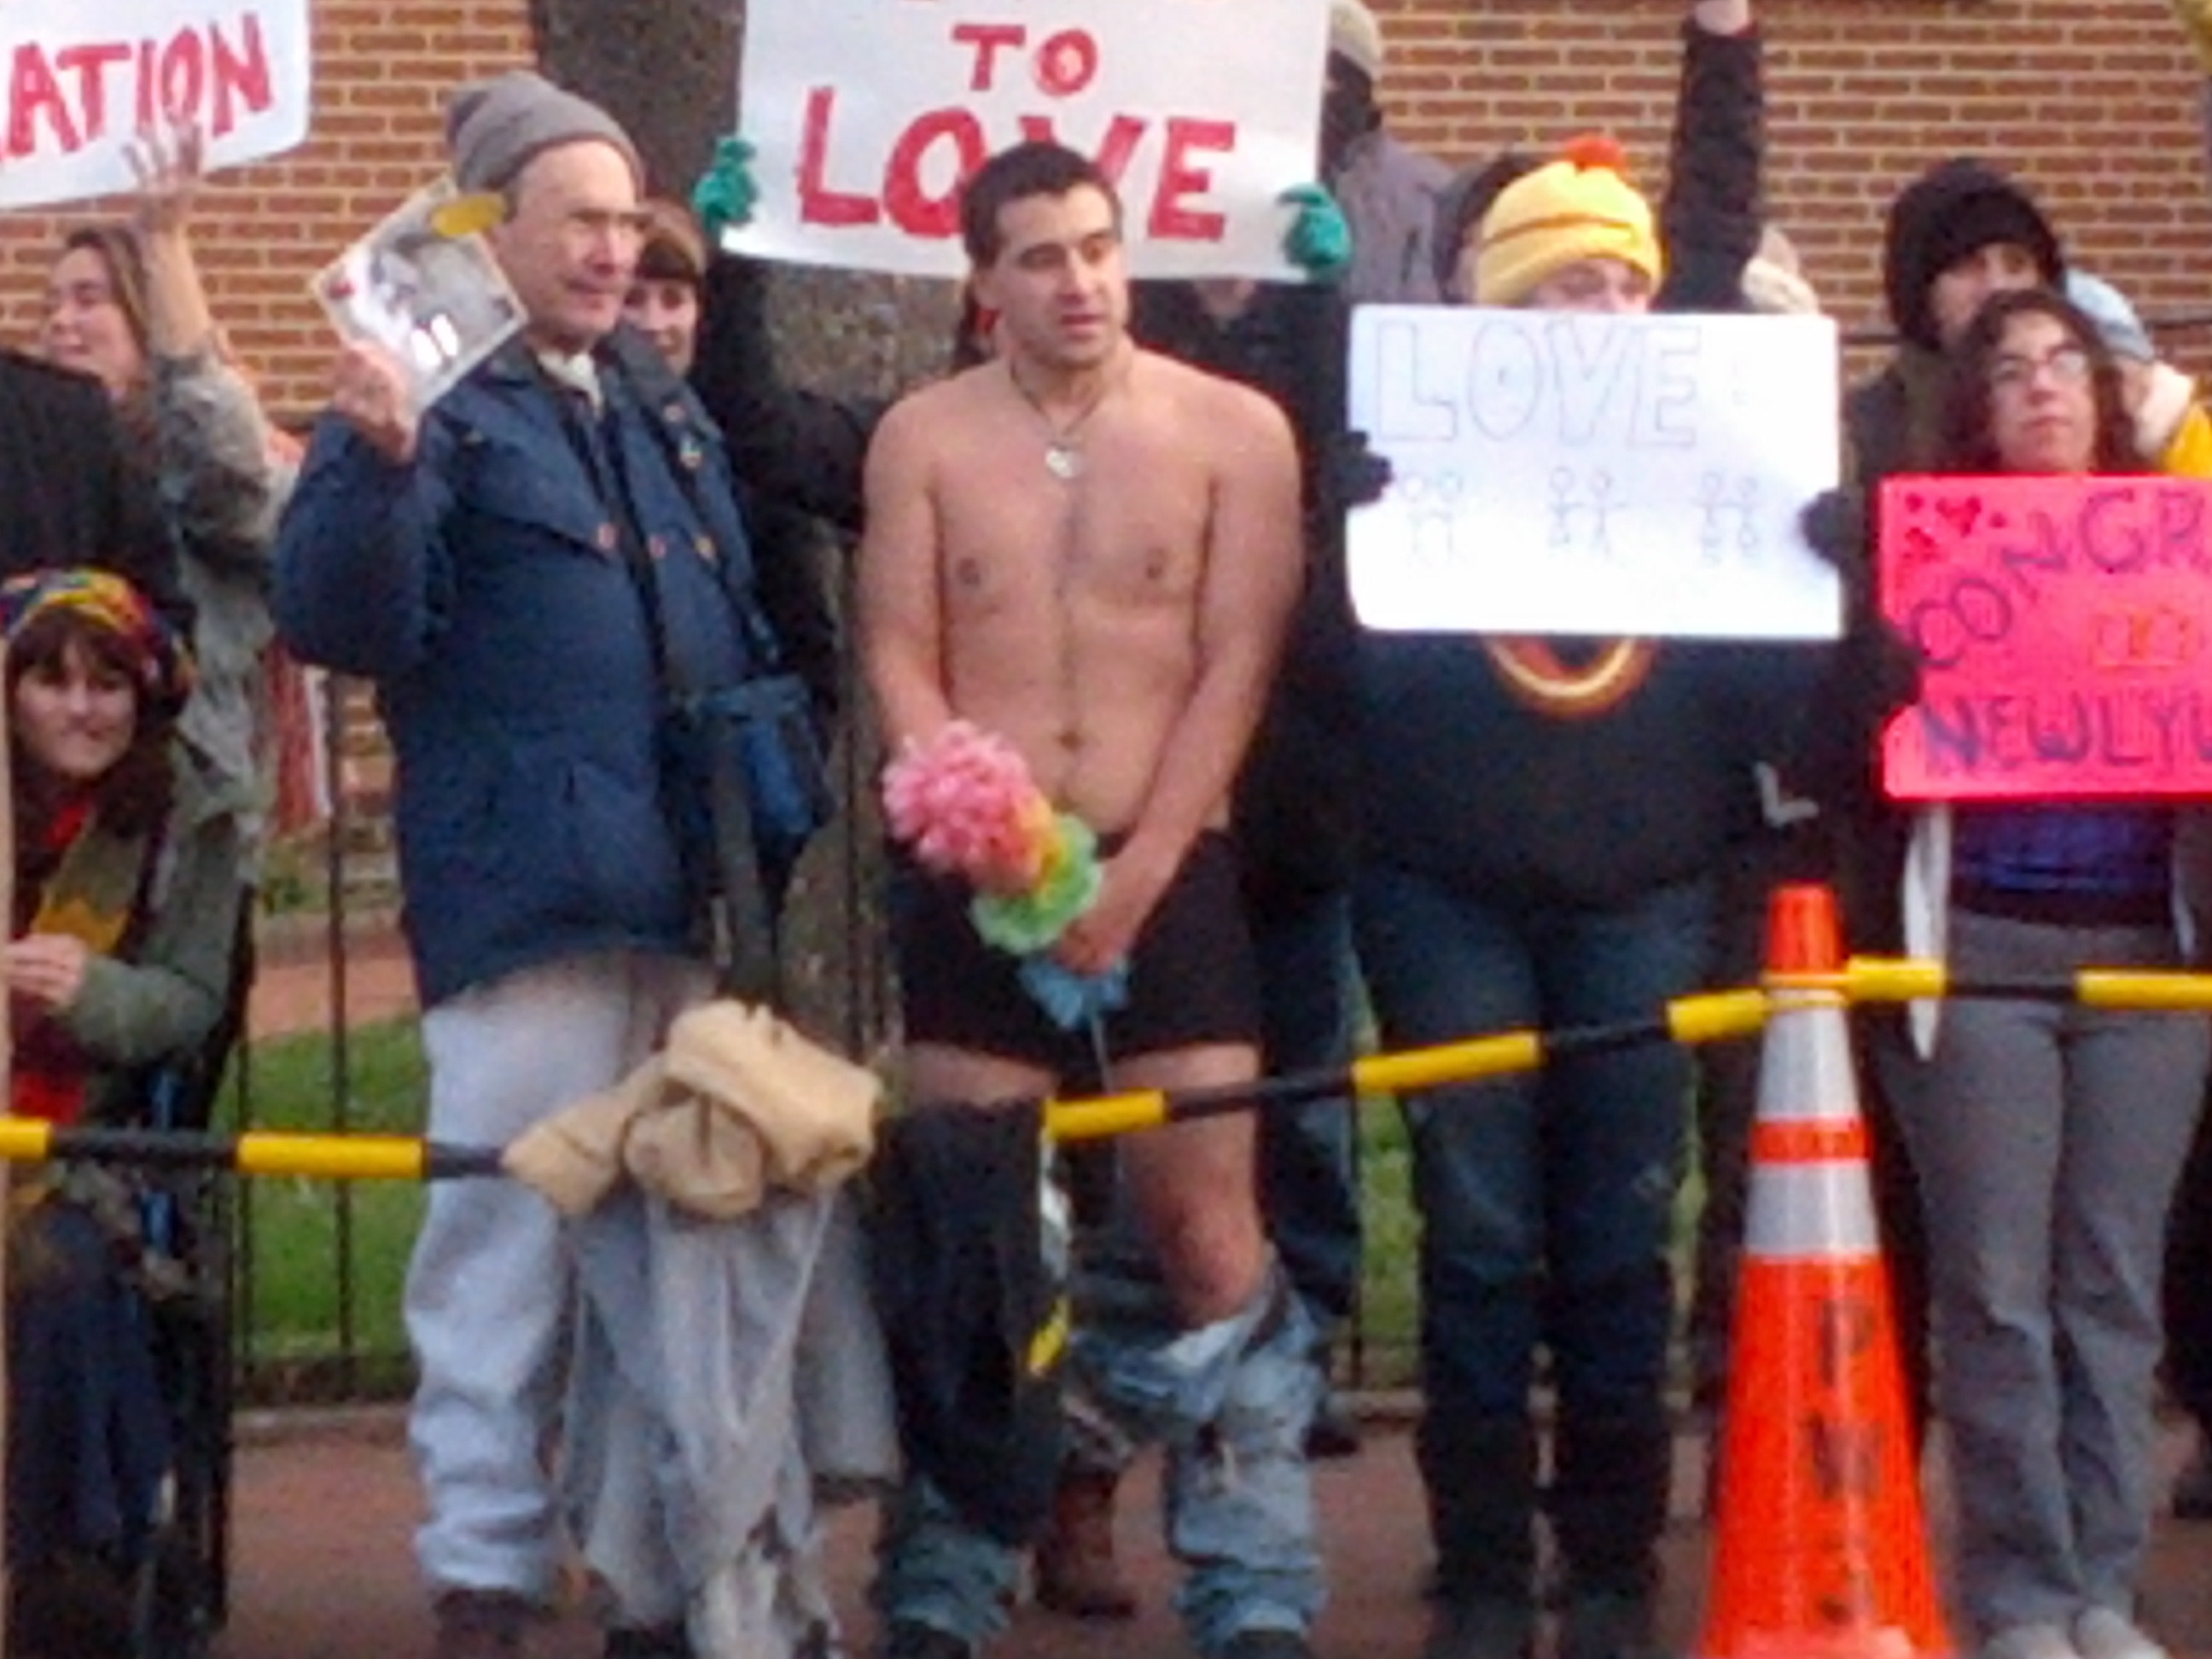 A counter protester naked except for his underwear holds a furry, rainbow-colored pole in front of his groin.